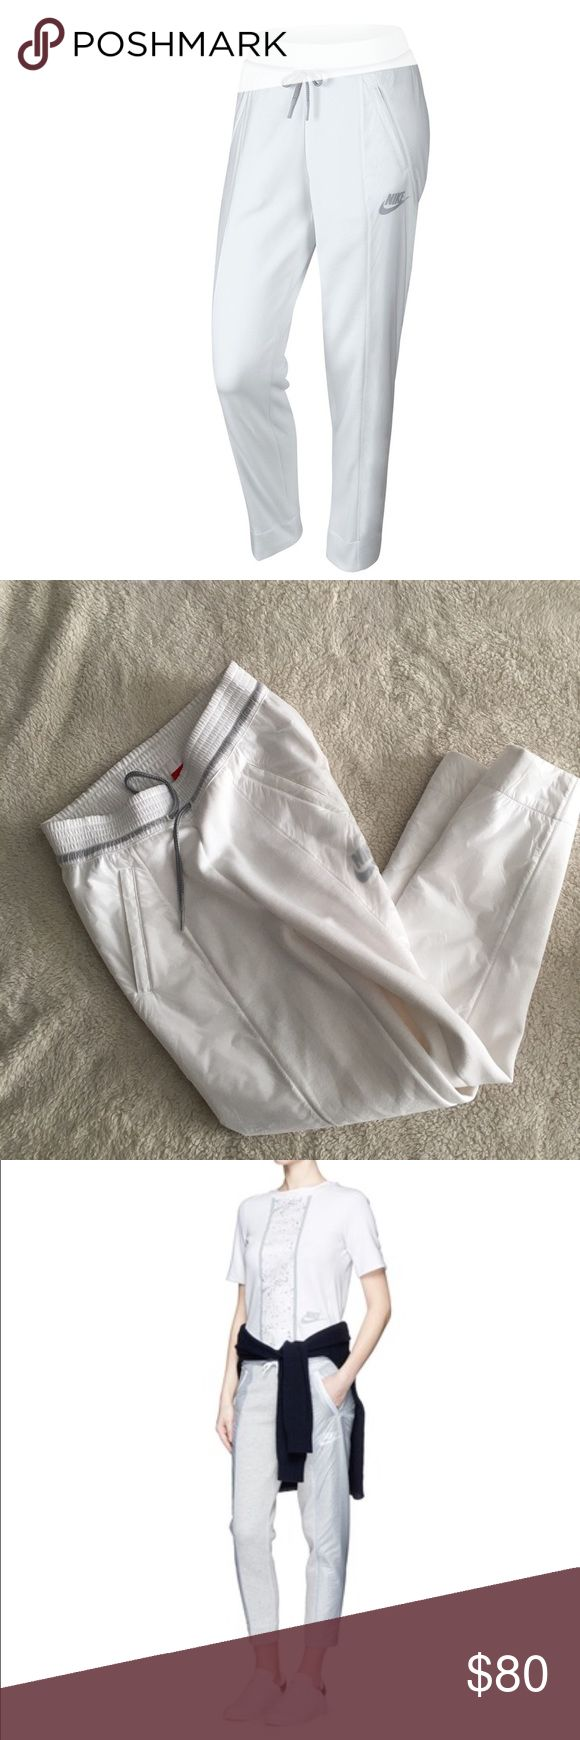 Nike Tech Fleece Sweatpants *Nike Tech Fleece Sweatpants!  *Retailed for $150 *70% cotton and 30% polyester  *Jogging adjusted and padded, decorated with nylon inserts on the legs. (3rd picture is the same sweatpants in a different color way) *2 zipped slanted front and  *Elastic waist with a drawstring.  *Inseam: 27 inches  *Just a small small faint stain near legging opening while trying it on. Probably can be washed off!  *No trades, please! 0002091700bsp Nike Pants Track Pants & Joggers